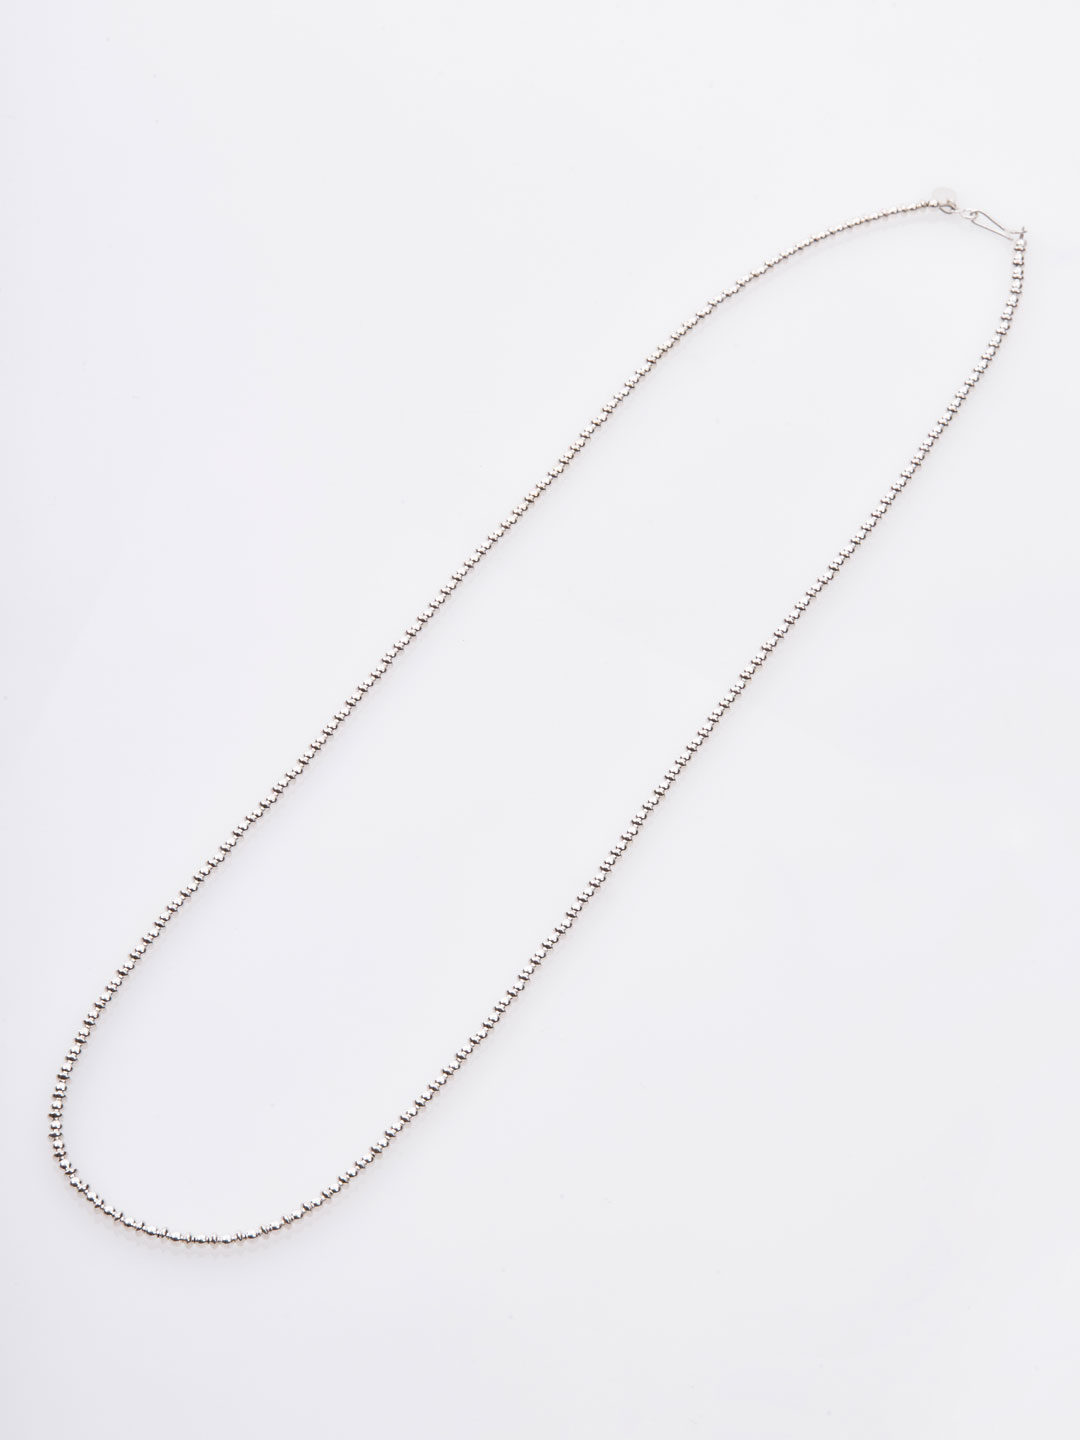 3mm Ball & Disc Chain Necklace 77cm  - Silver